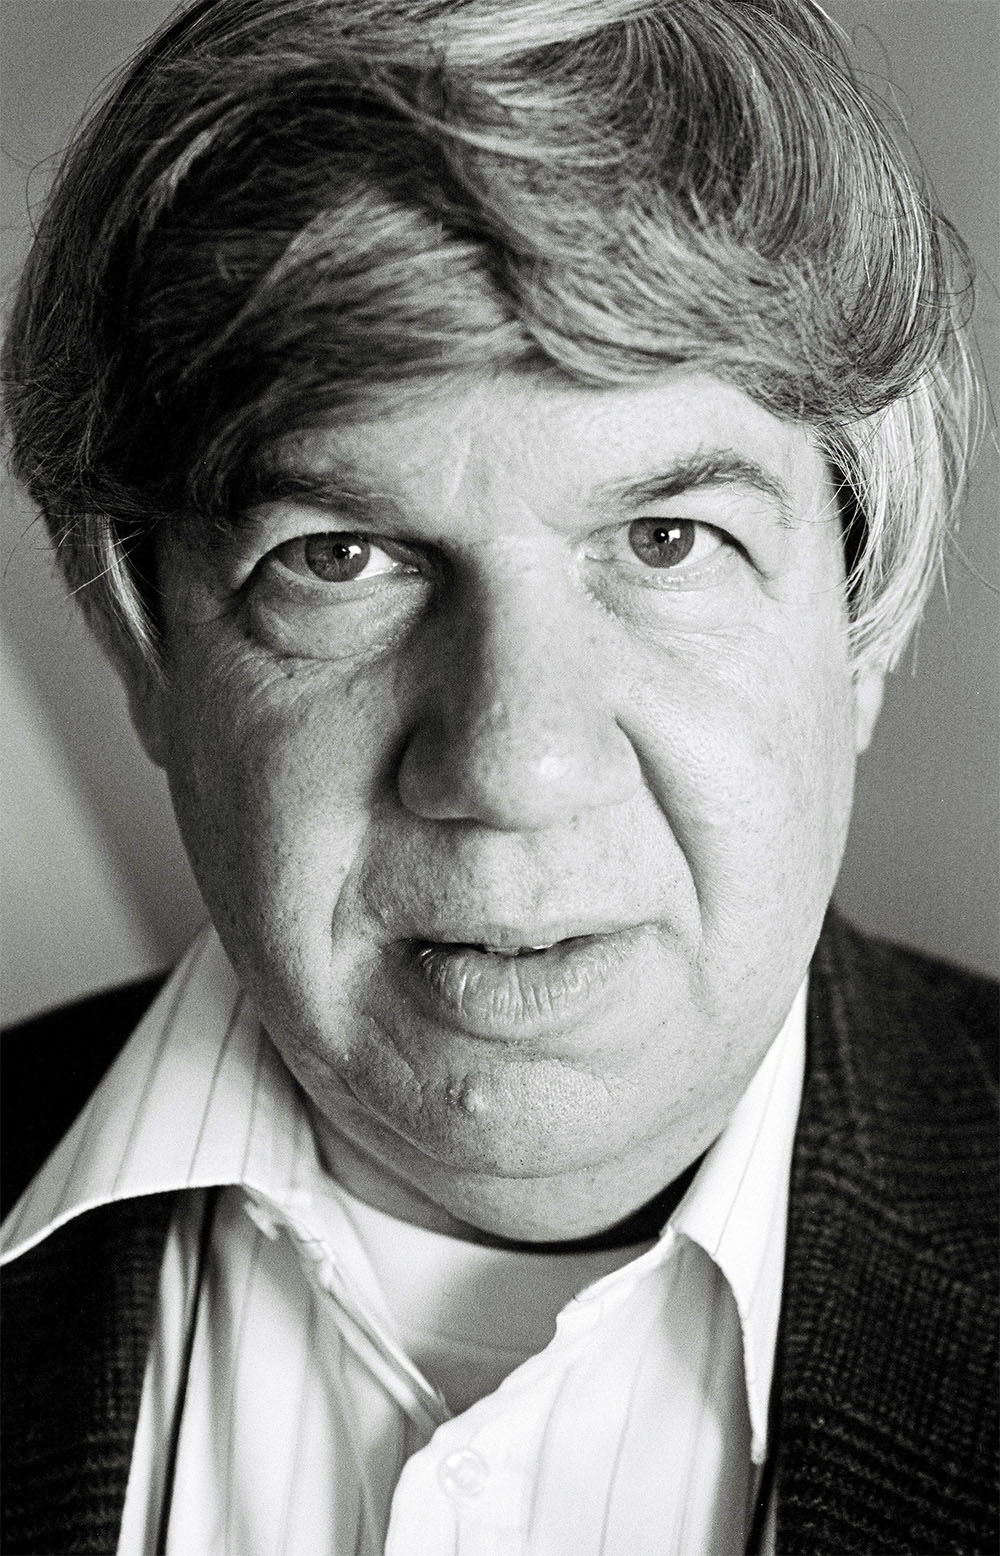 stephen jay gould cancer essay A bittersweet remembrance of the great stephen jay gould, or what  it was  originally published in 2002, mere weeks after gould passed away from cancer  from a fascinating essay on vladimir nabokov's lepidoptery.